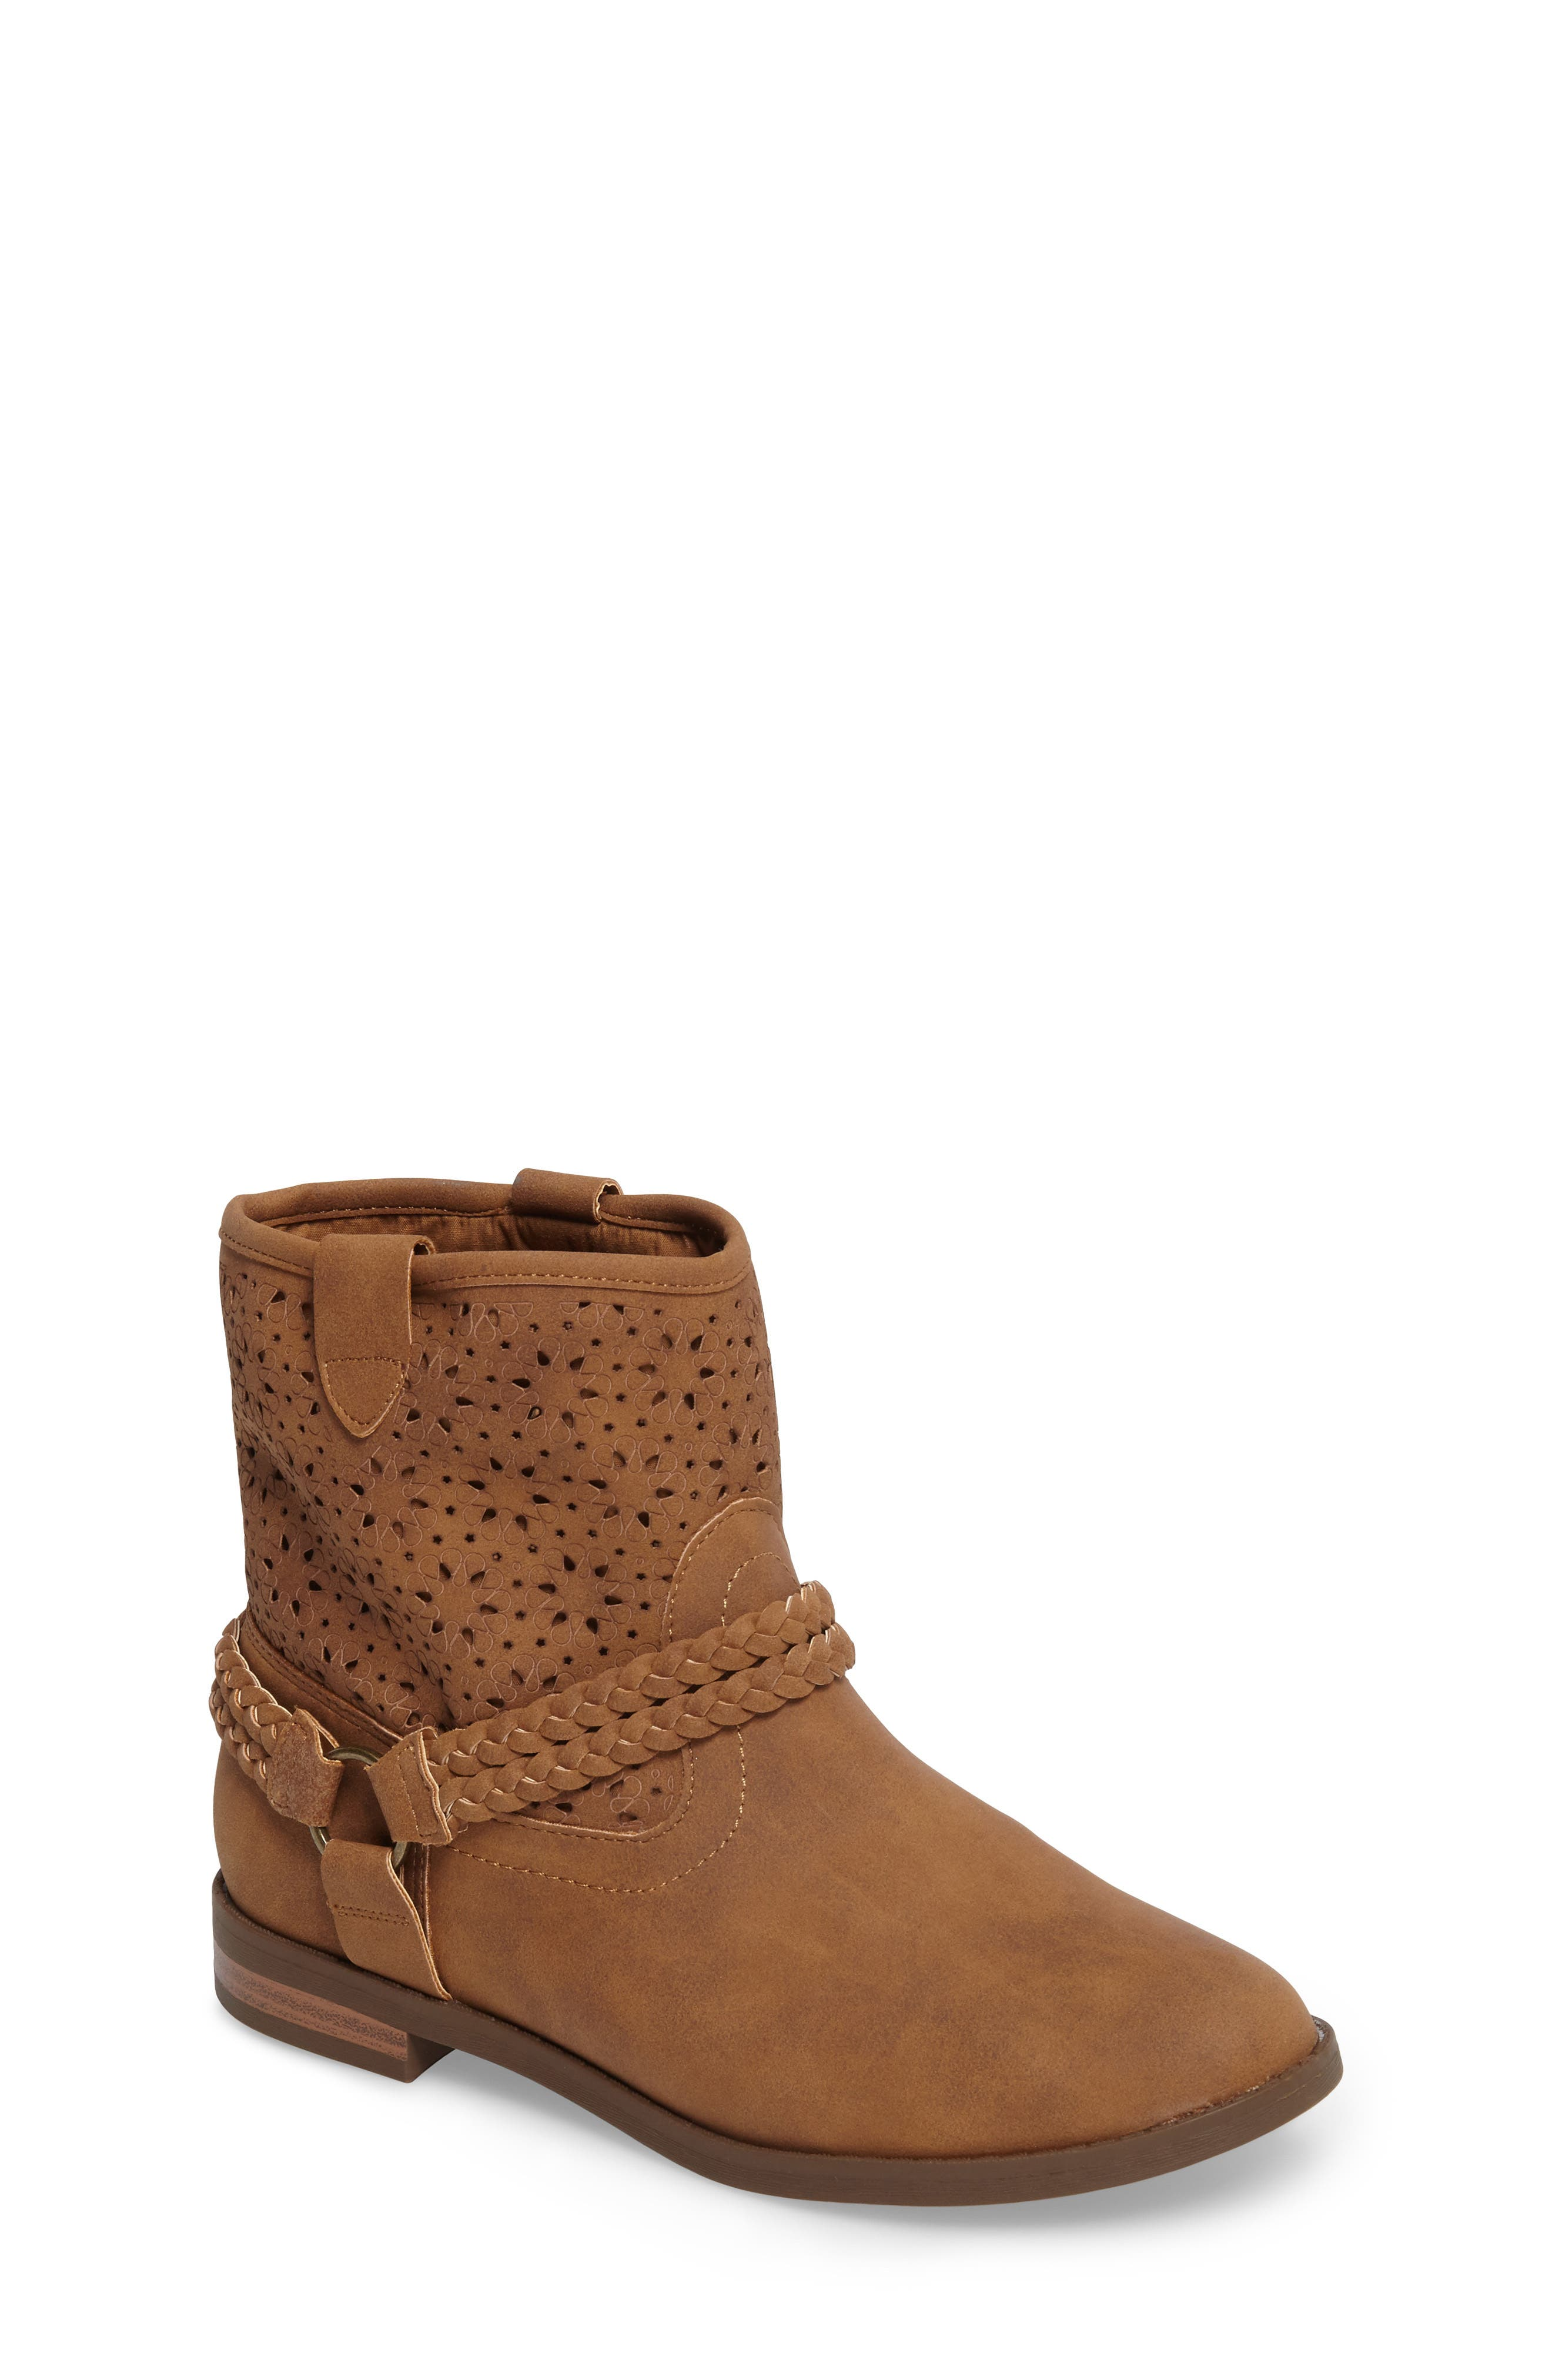 Jessica Simpson Rancho Bootie (Toddler, Little Kid & Big Kid)